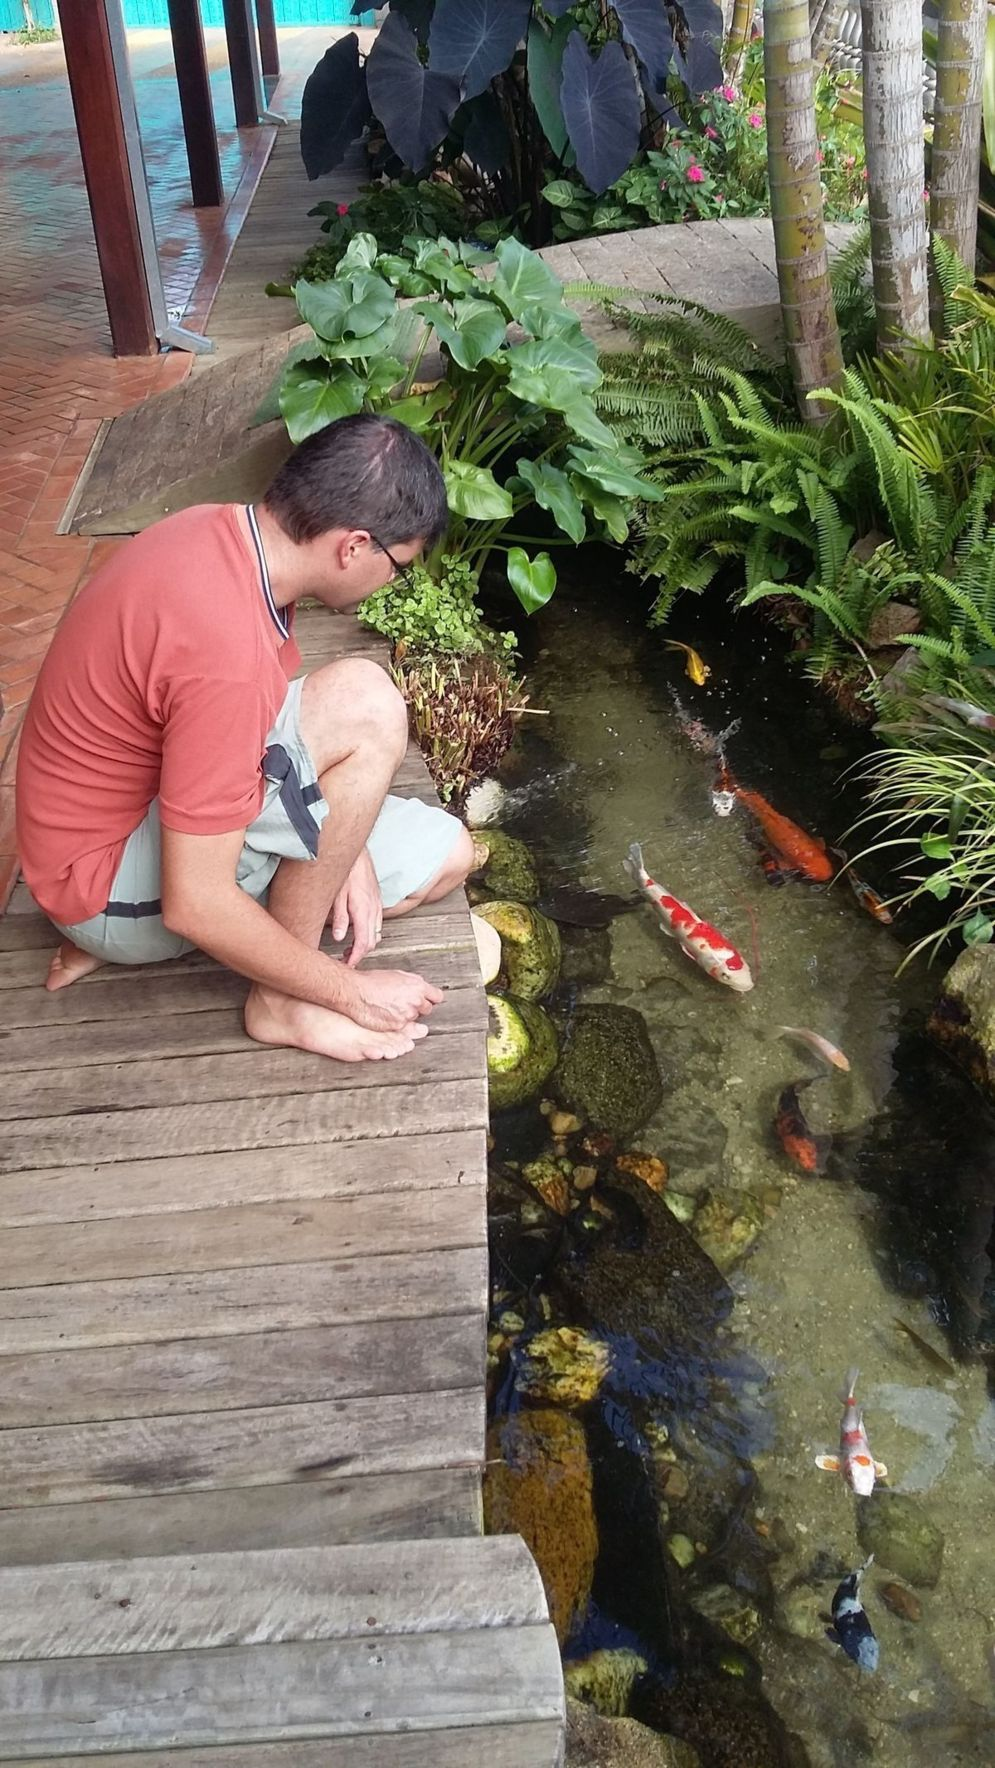 Inspiring small fish pond designs to upgrade the outdoor landscape for more lively and refreshing Image 31